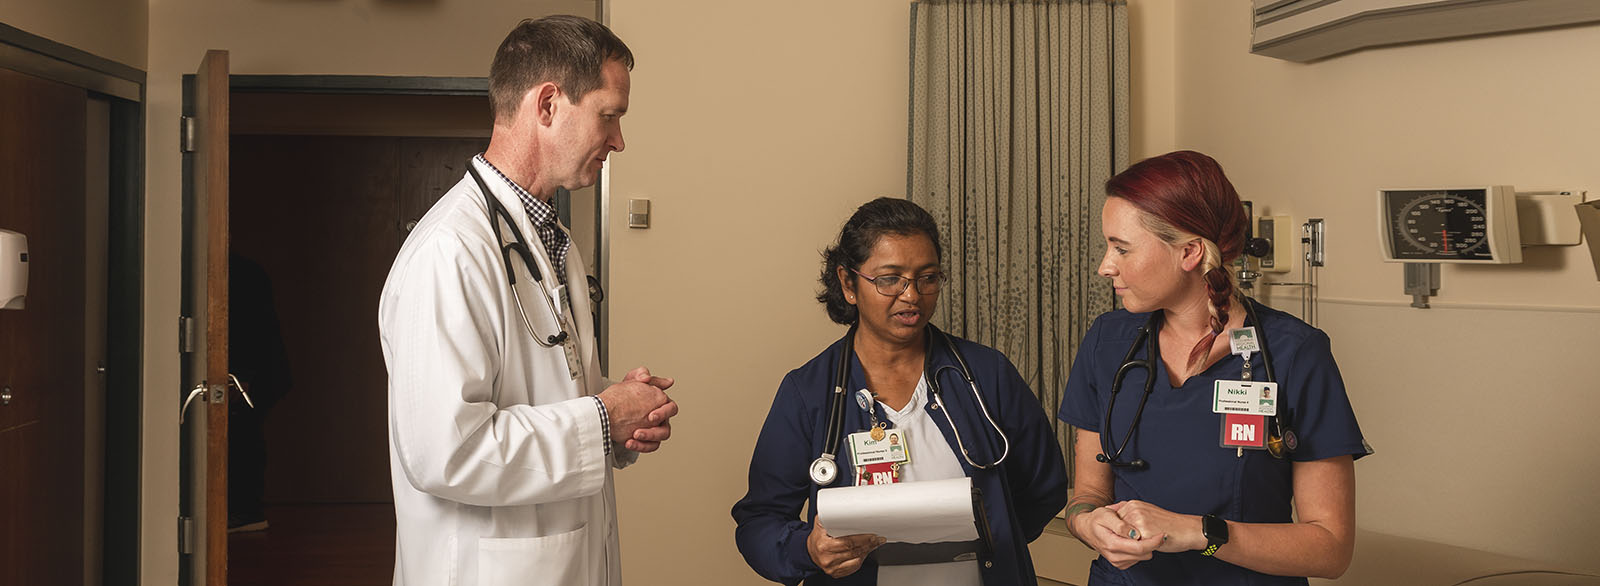 Physician preceptor speaking with nurses in a patient room.